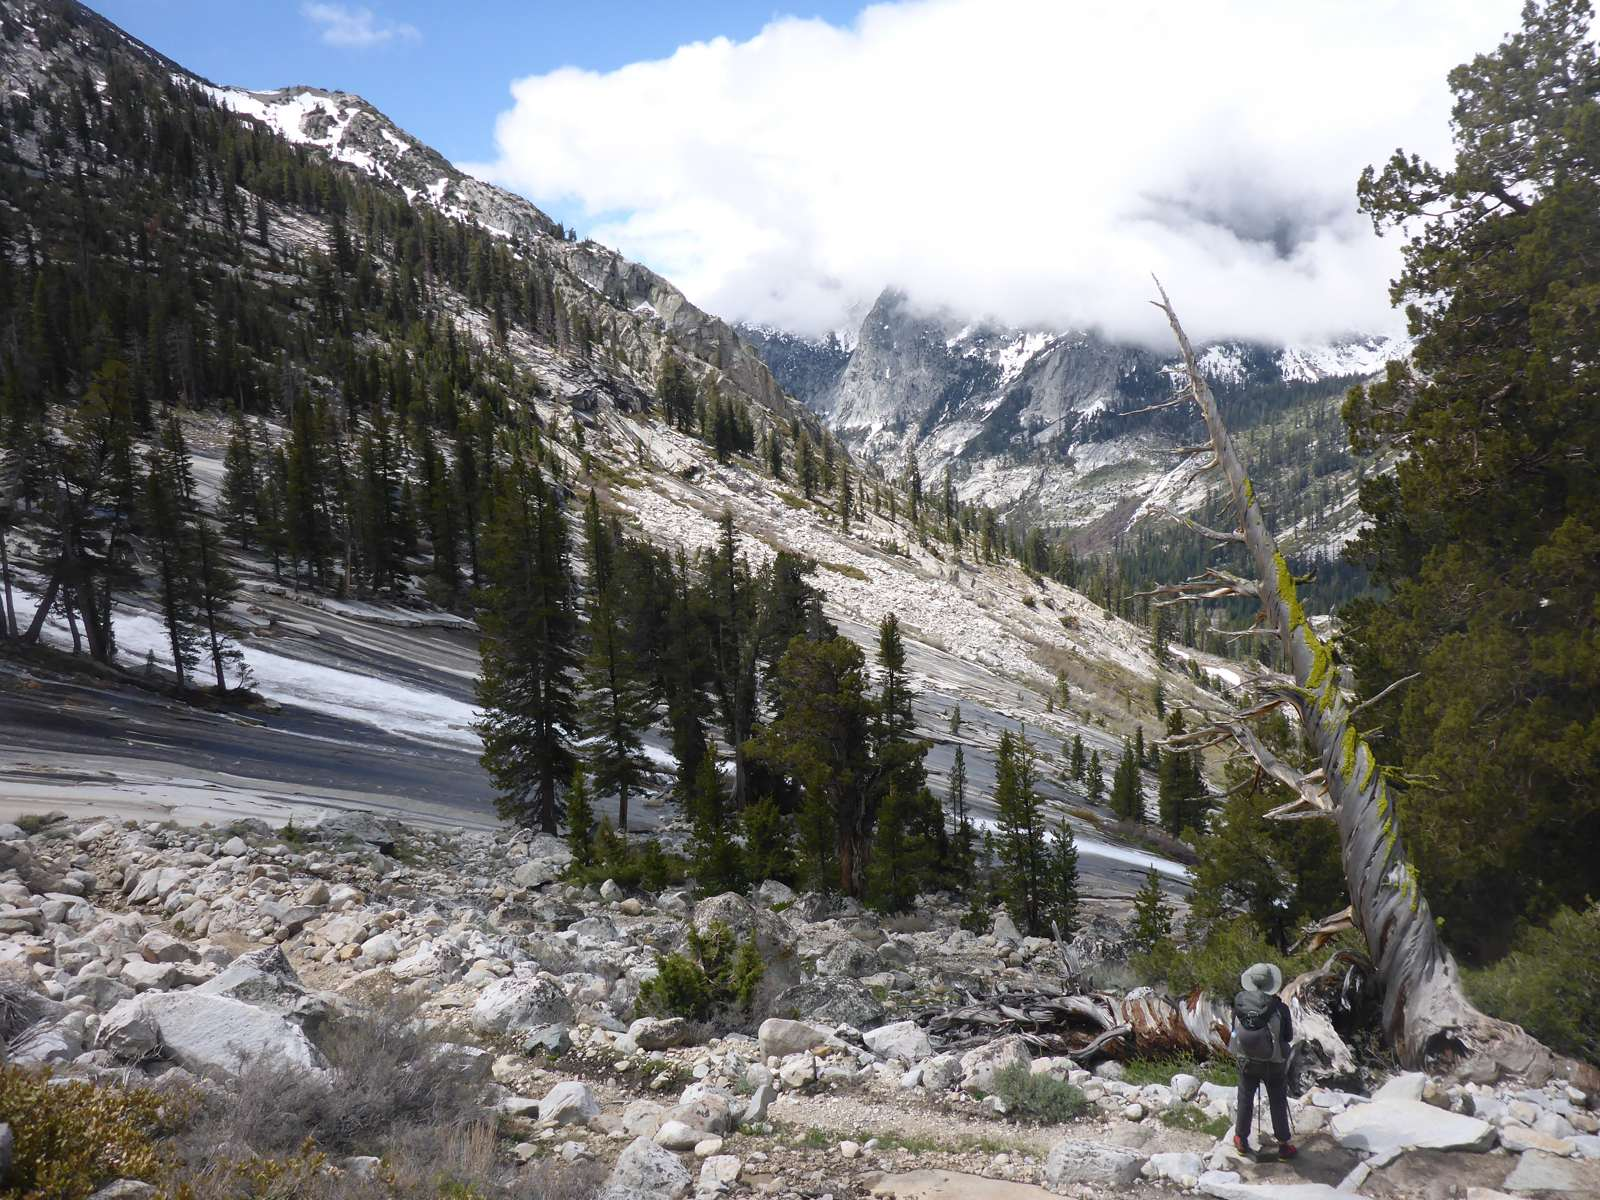 Deeper in the Sierra we explored scenic valleys with gushing rivers and beautiful forests.